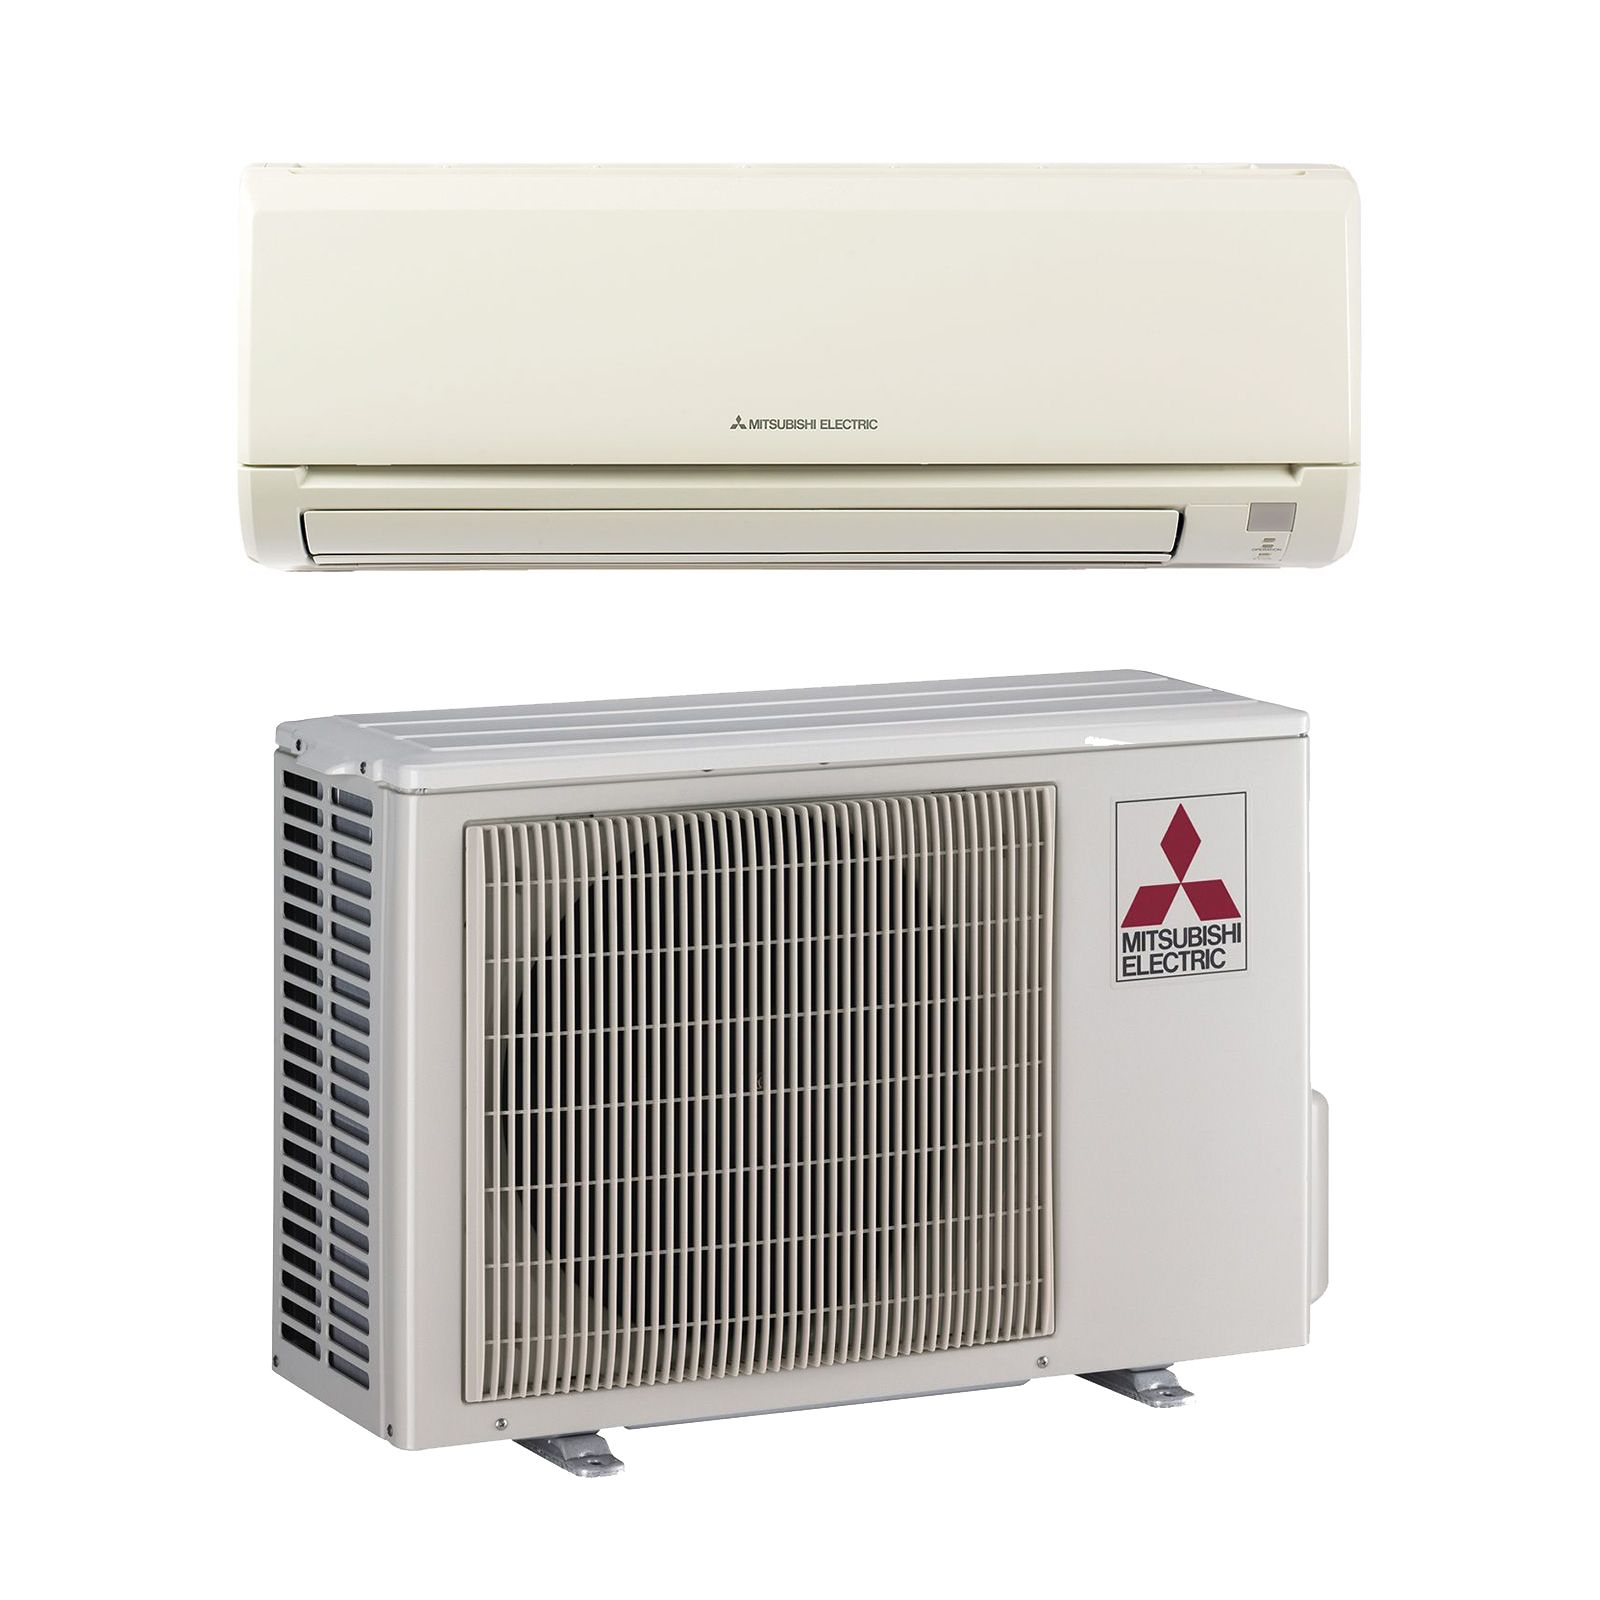 Mitsubishi Ductless Mitsubishi Mr Slim 18000 Btu Ductless Air Conditioner